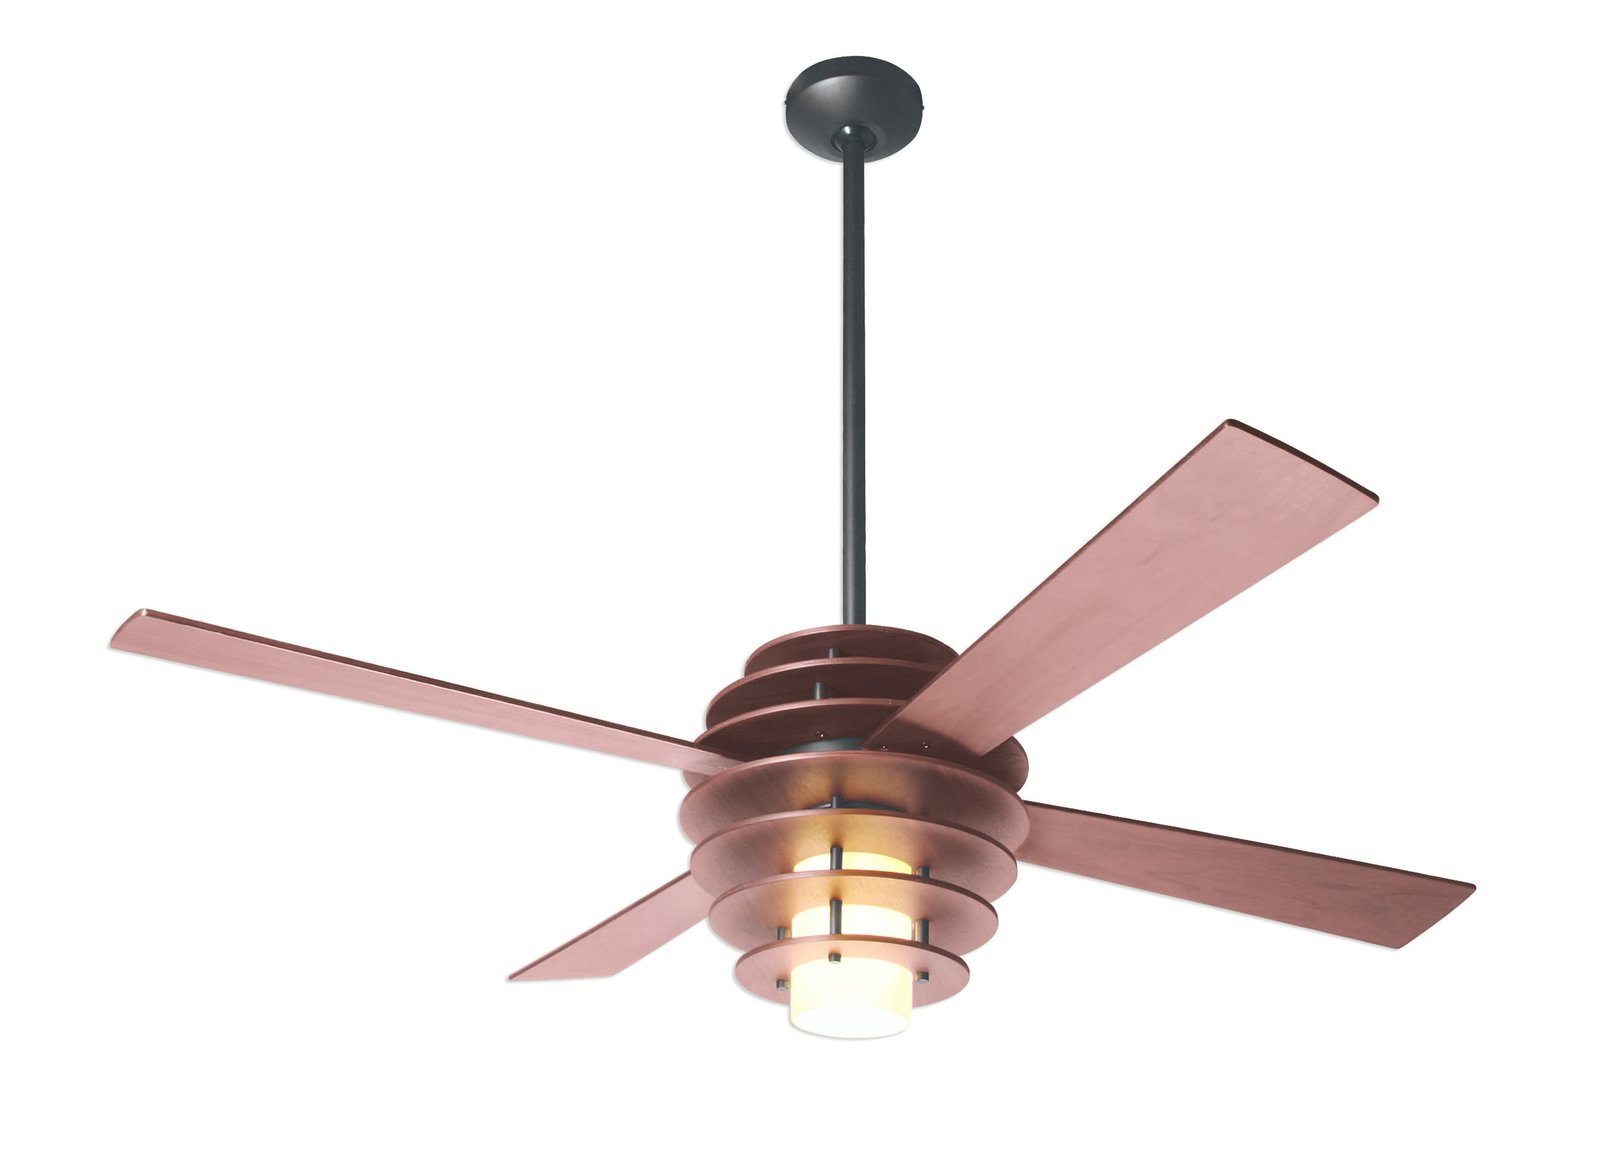 Modern Ceiling Fans Collection Of 5 Photos By Marianne